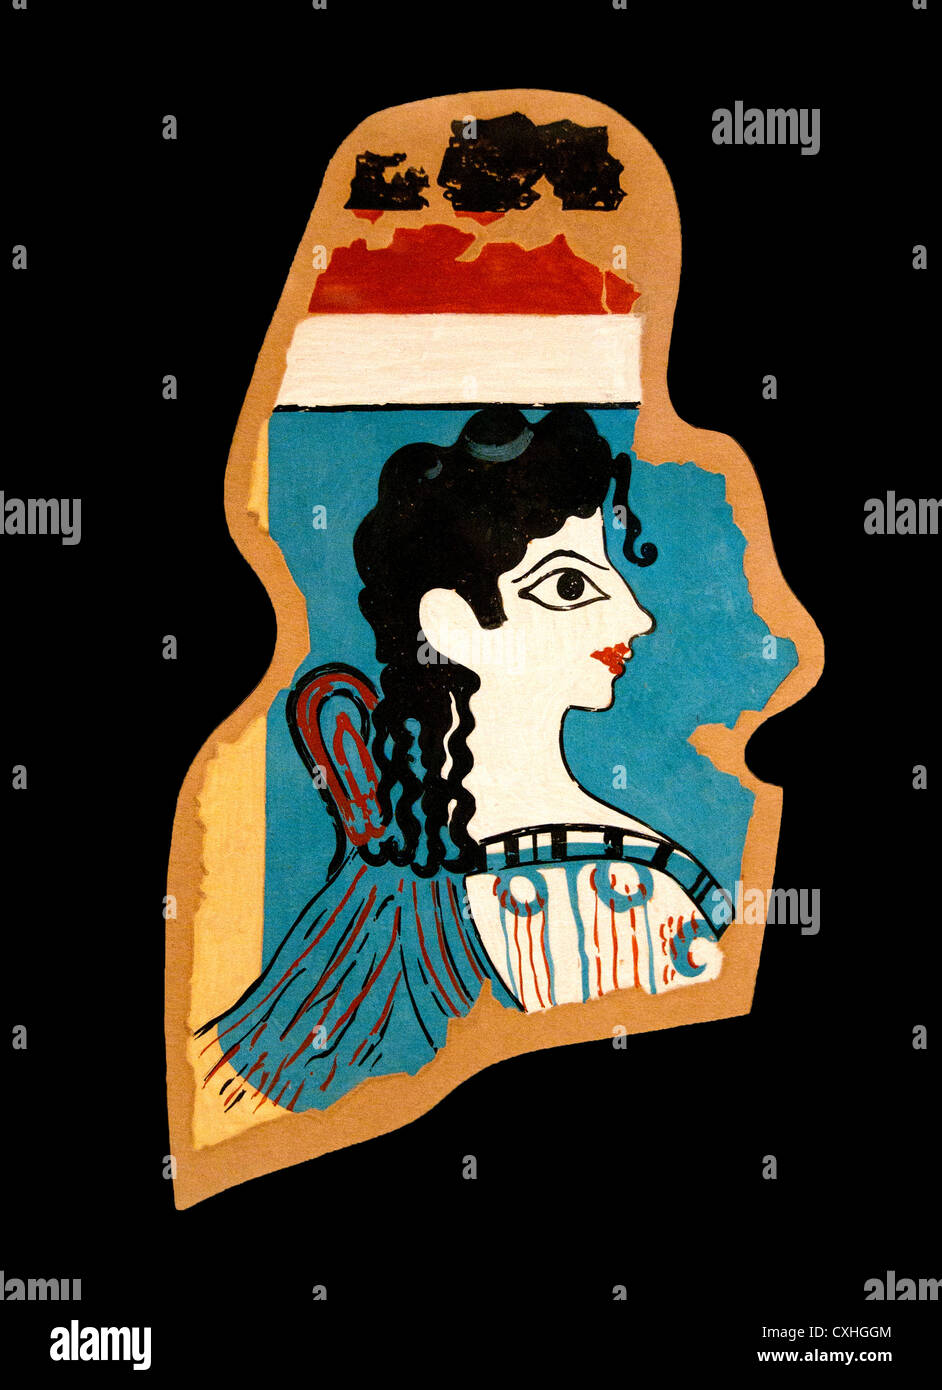 La Parisienne 1425-1300 B.C Minoan Fresco Great Palace Knossos Crete Greece  Reproduction by Emile Gilliéron 1906